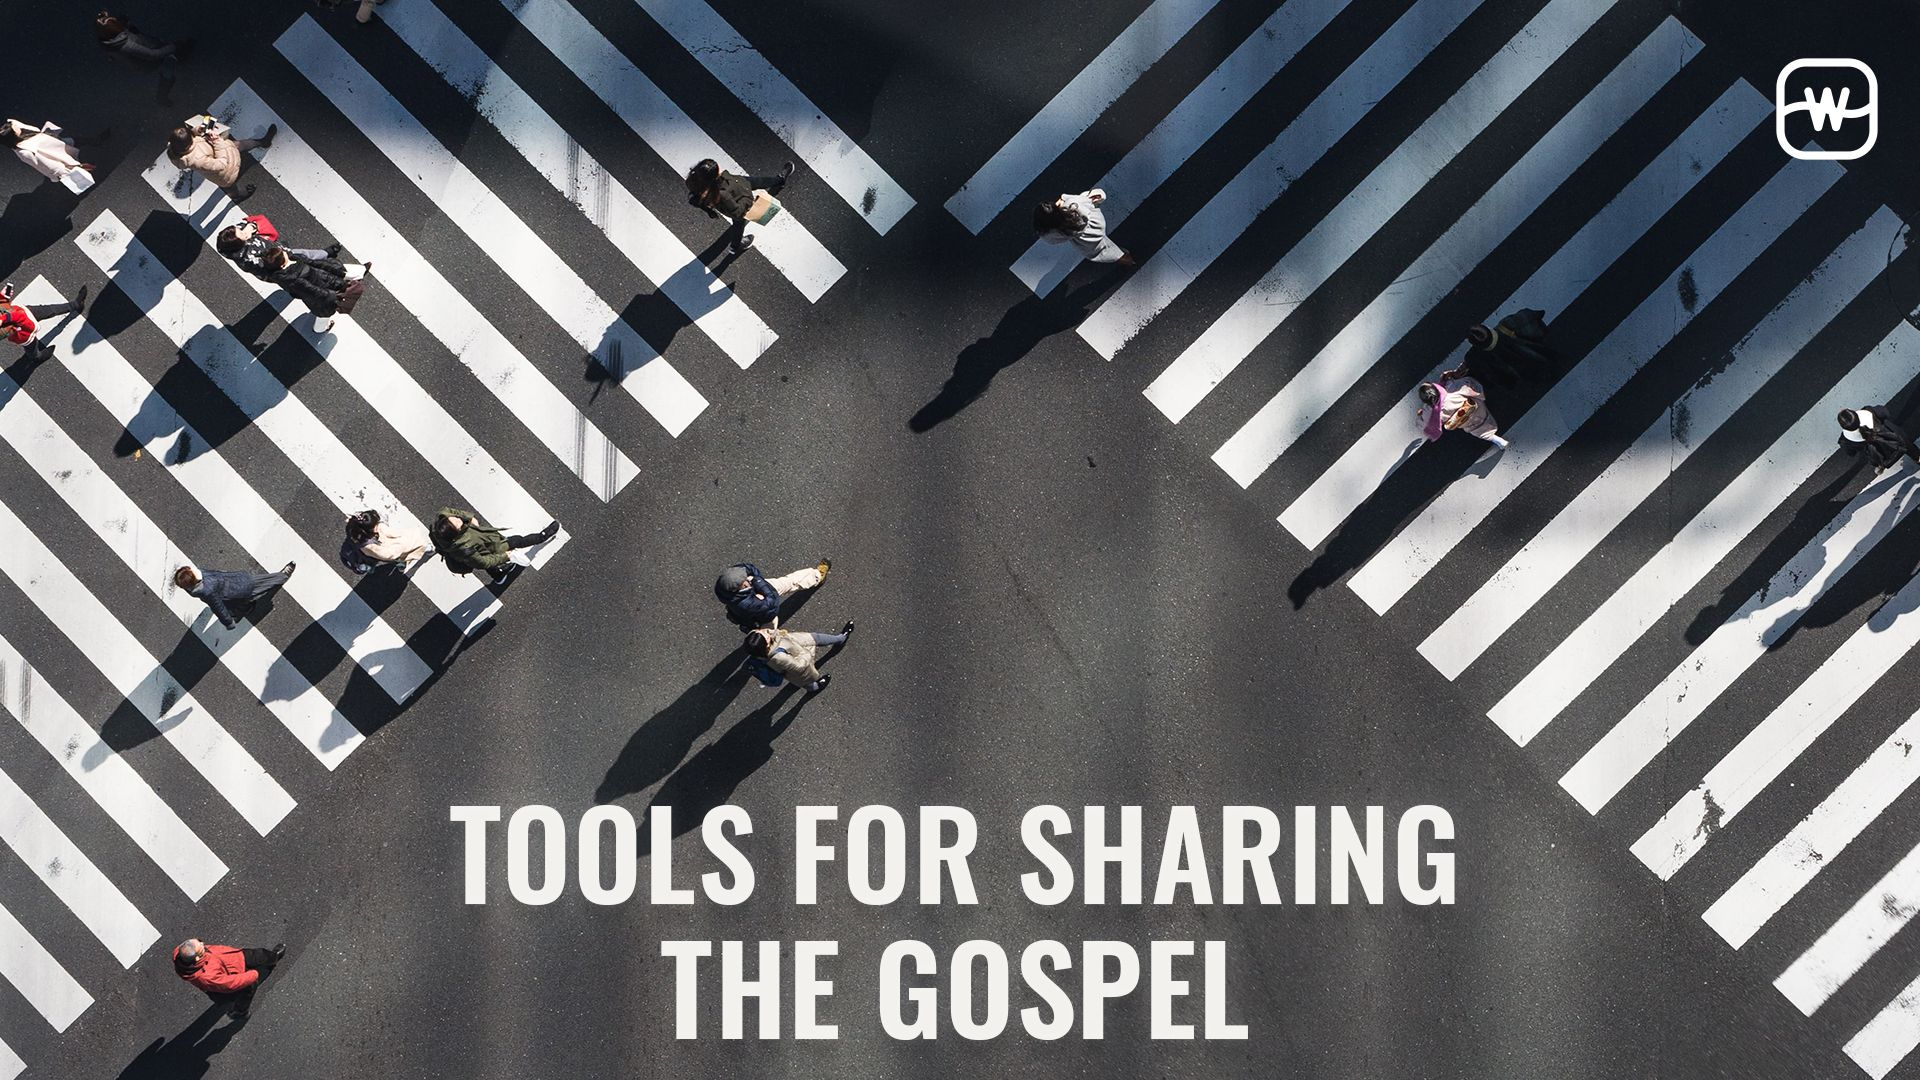 Tools for Sharing the Gospel Hero Image